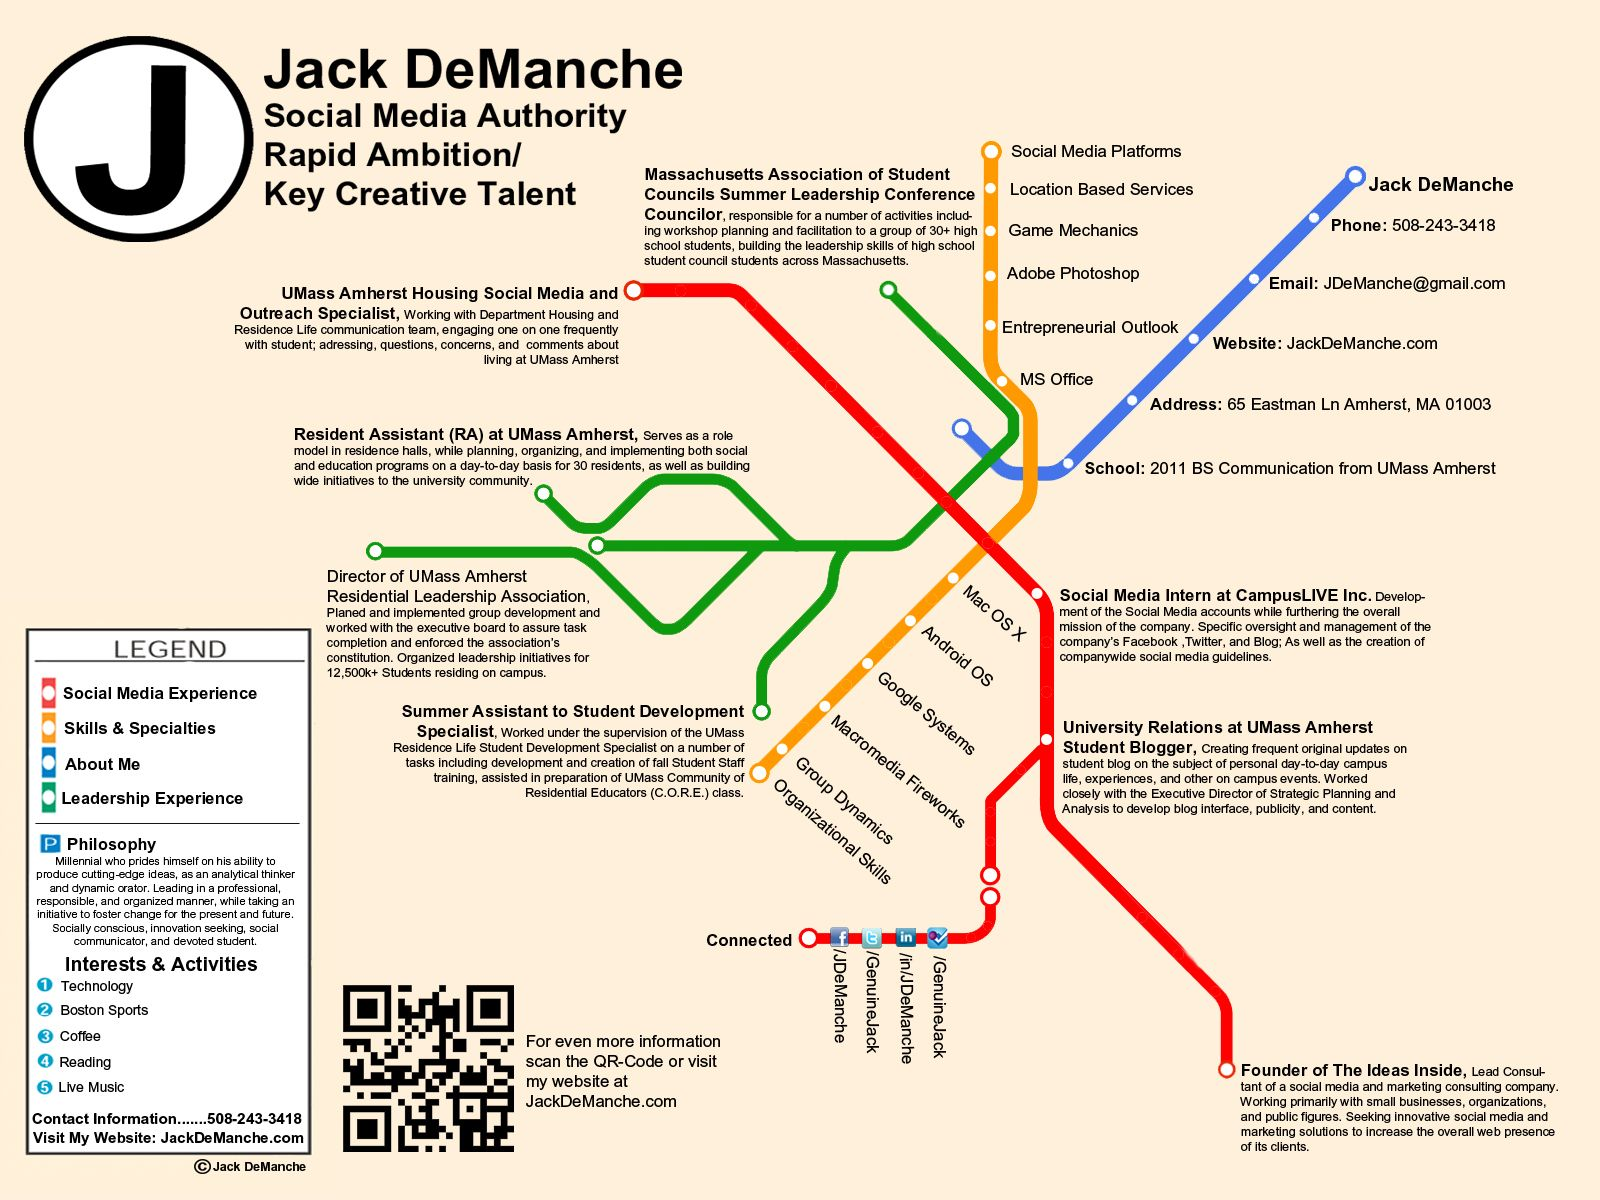 subway map jackdemancheresume